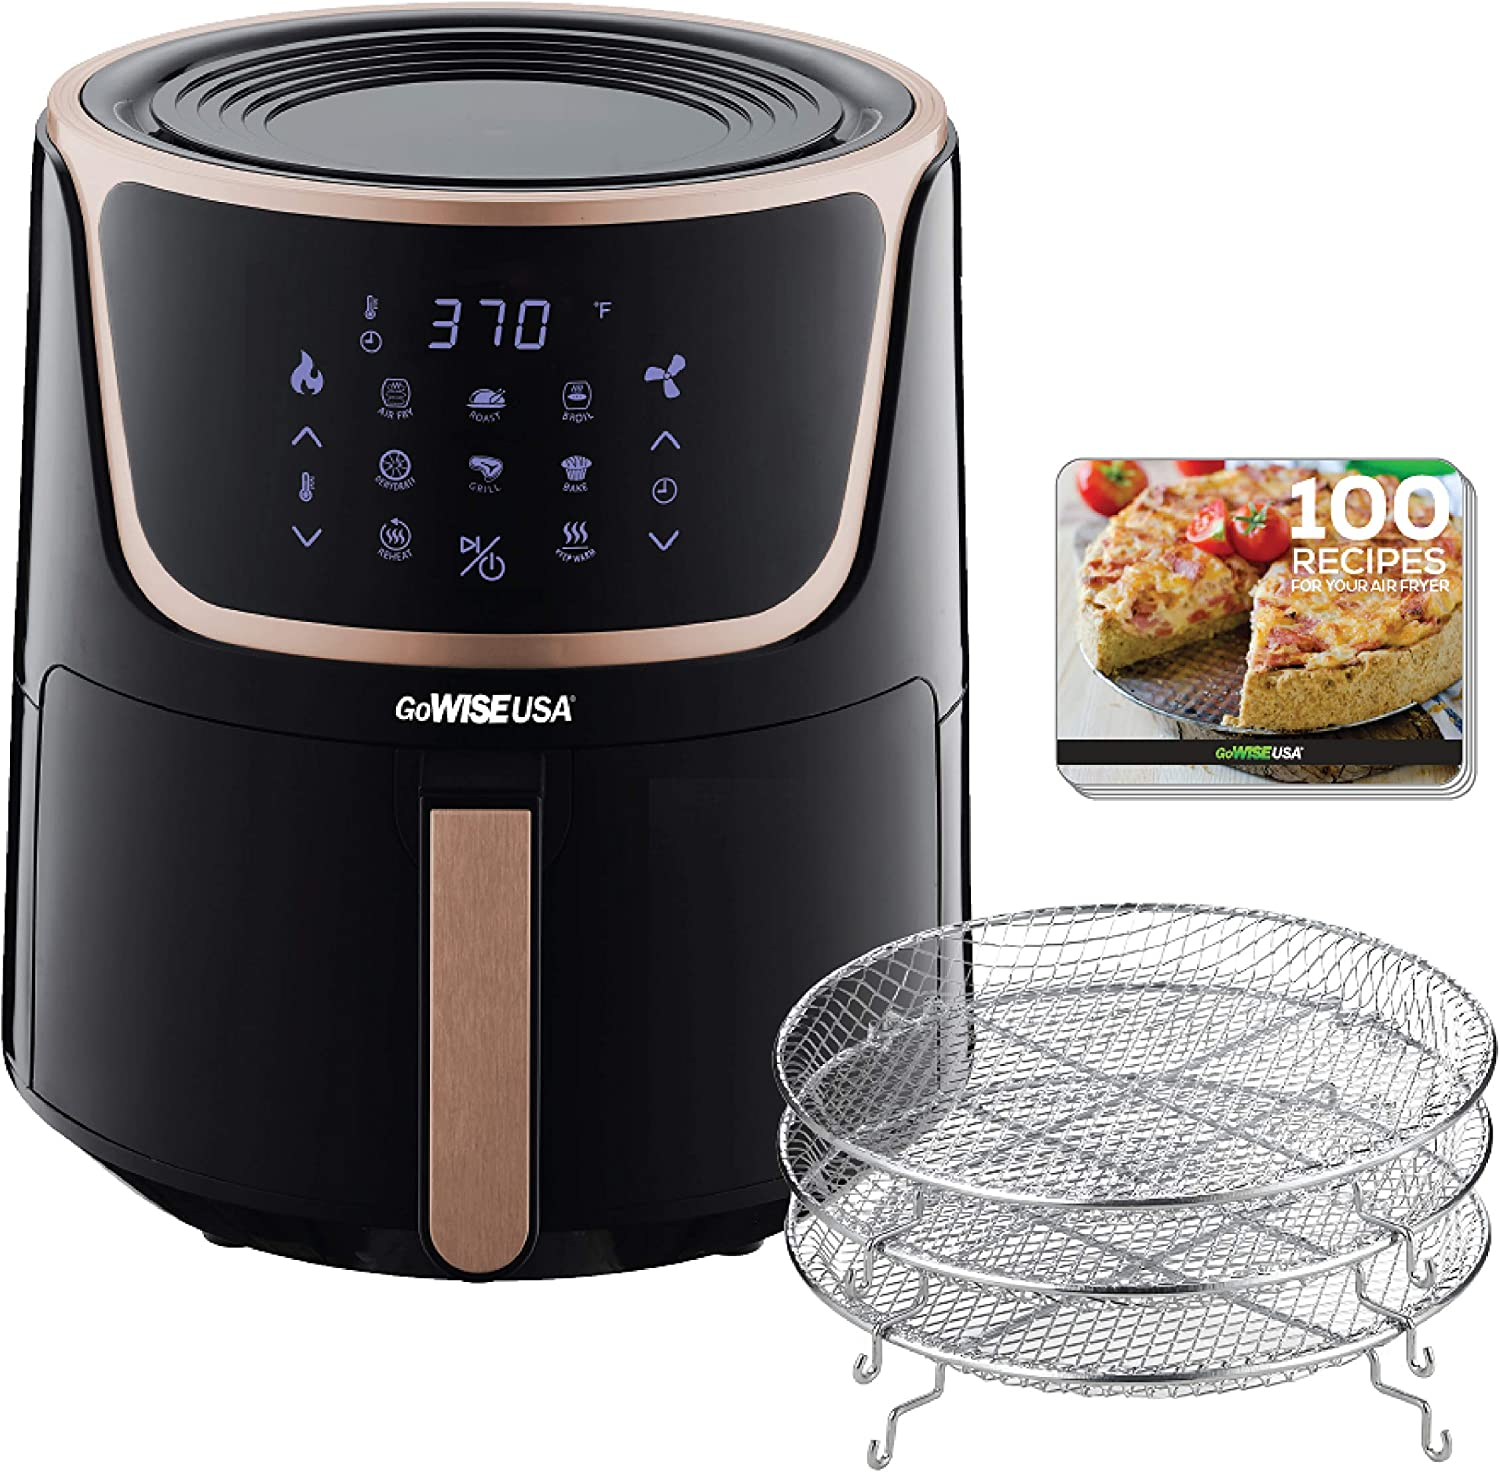 GoWISE USA GW22955 7-Quart Electric Air Fryer with Dehydrator & 3 Stackable Racks, Digital Touchscreen with 8 Functions + Recipes, 7.0-Qt, Black/Copper